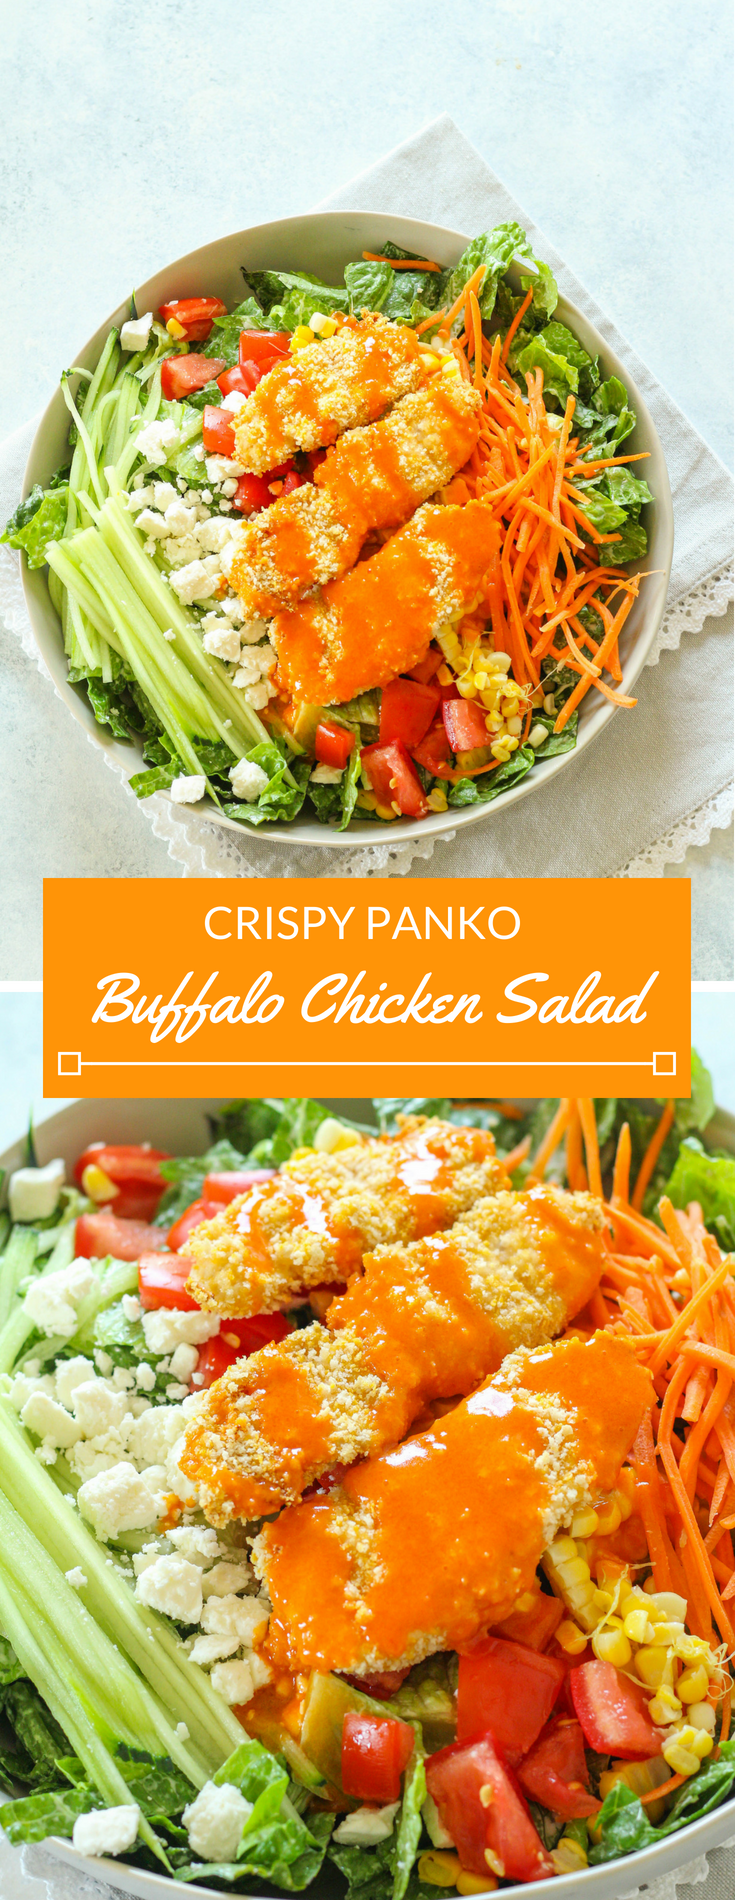 Crispy Buffalo Chicken Salad with Roasted Corn